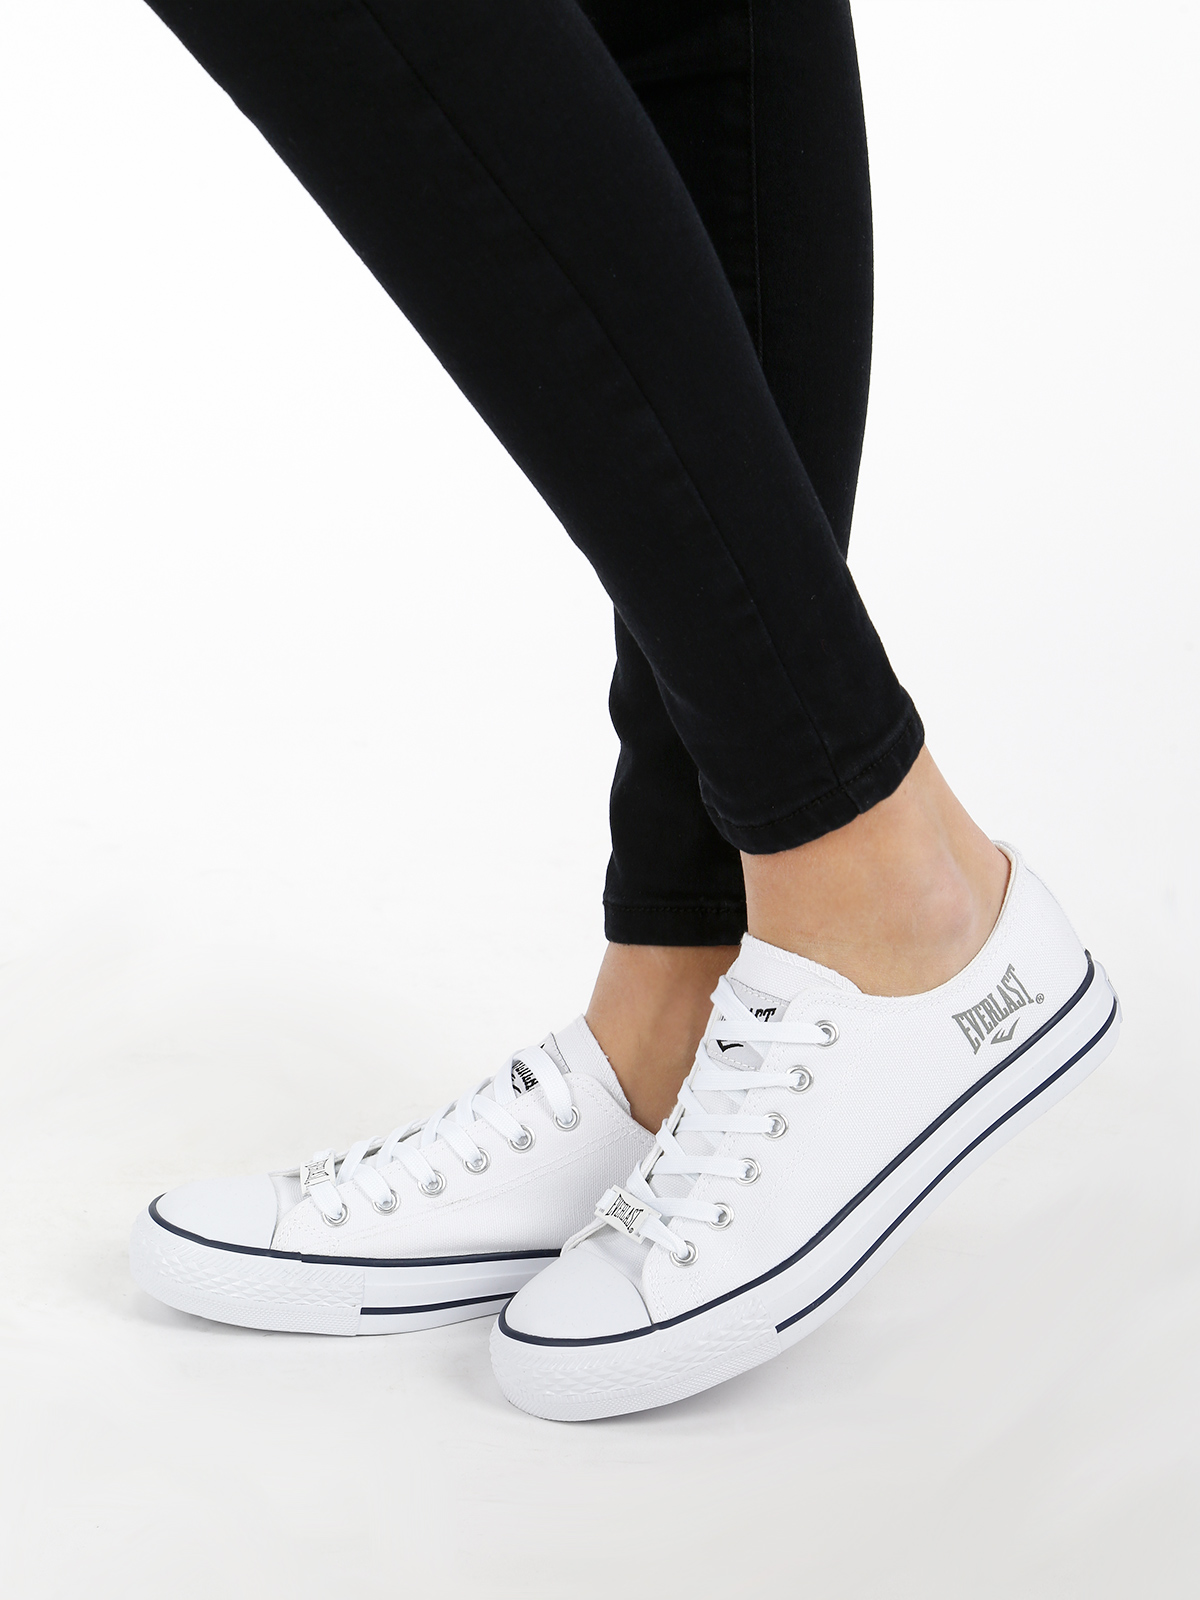 Low Canvas Shoes-White